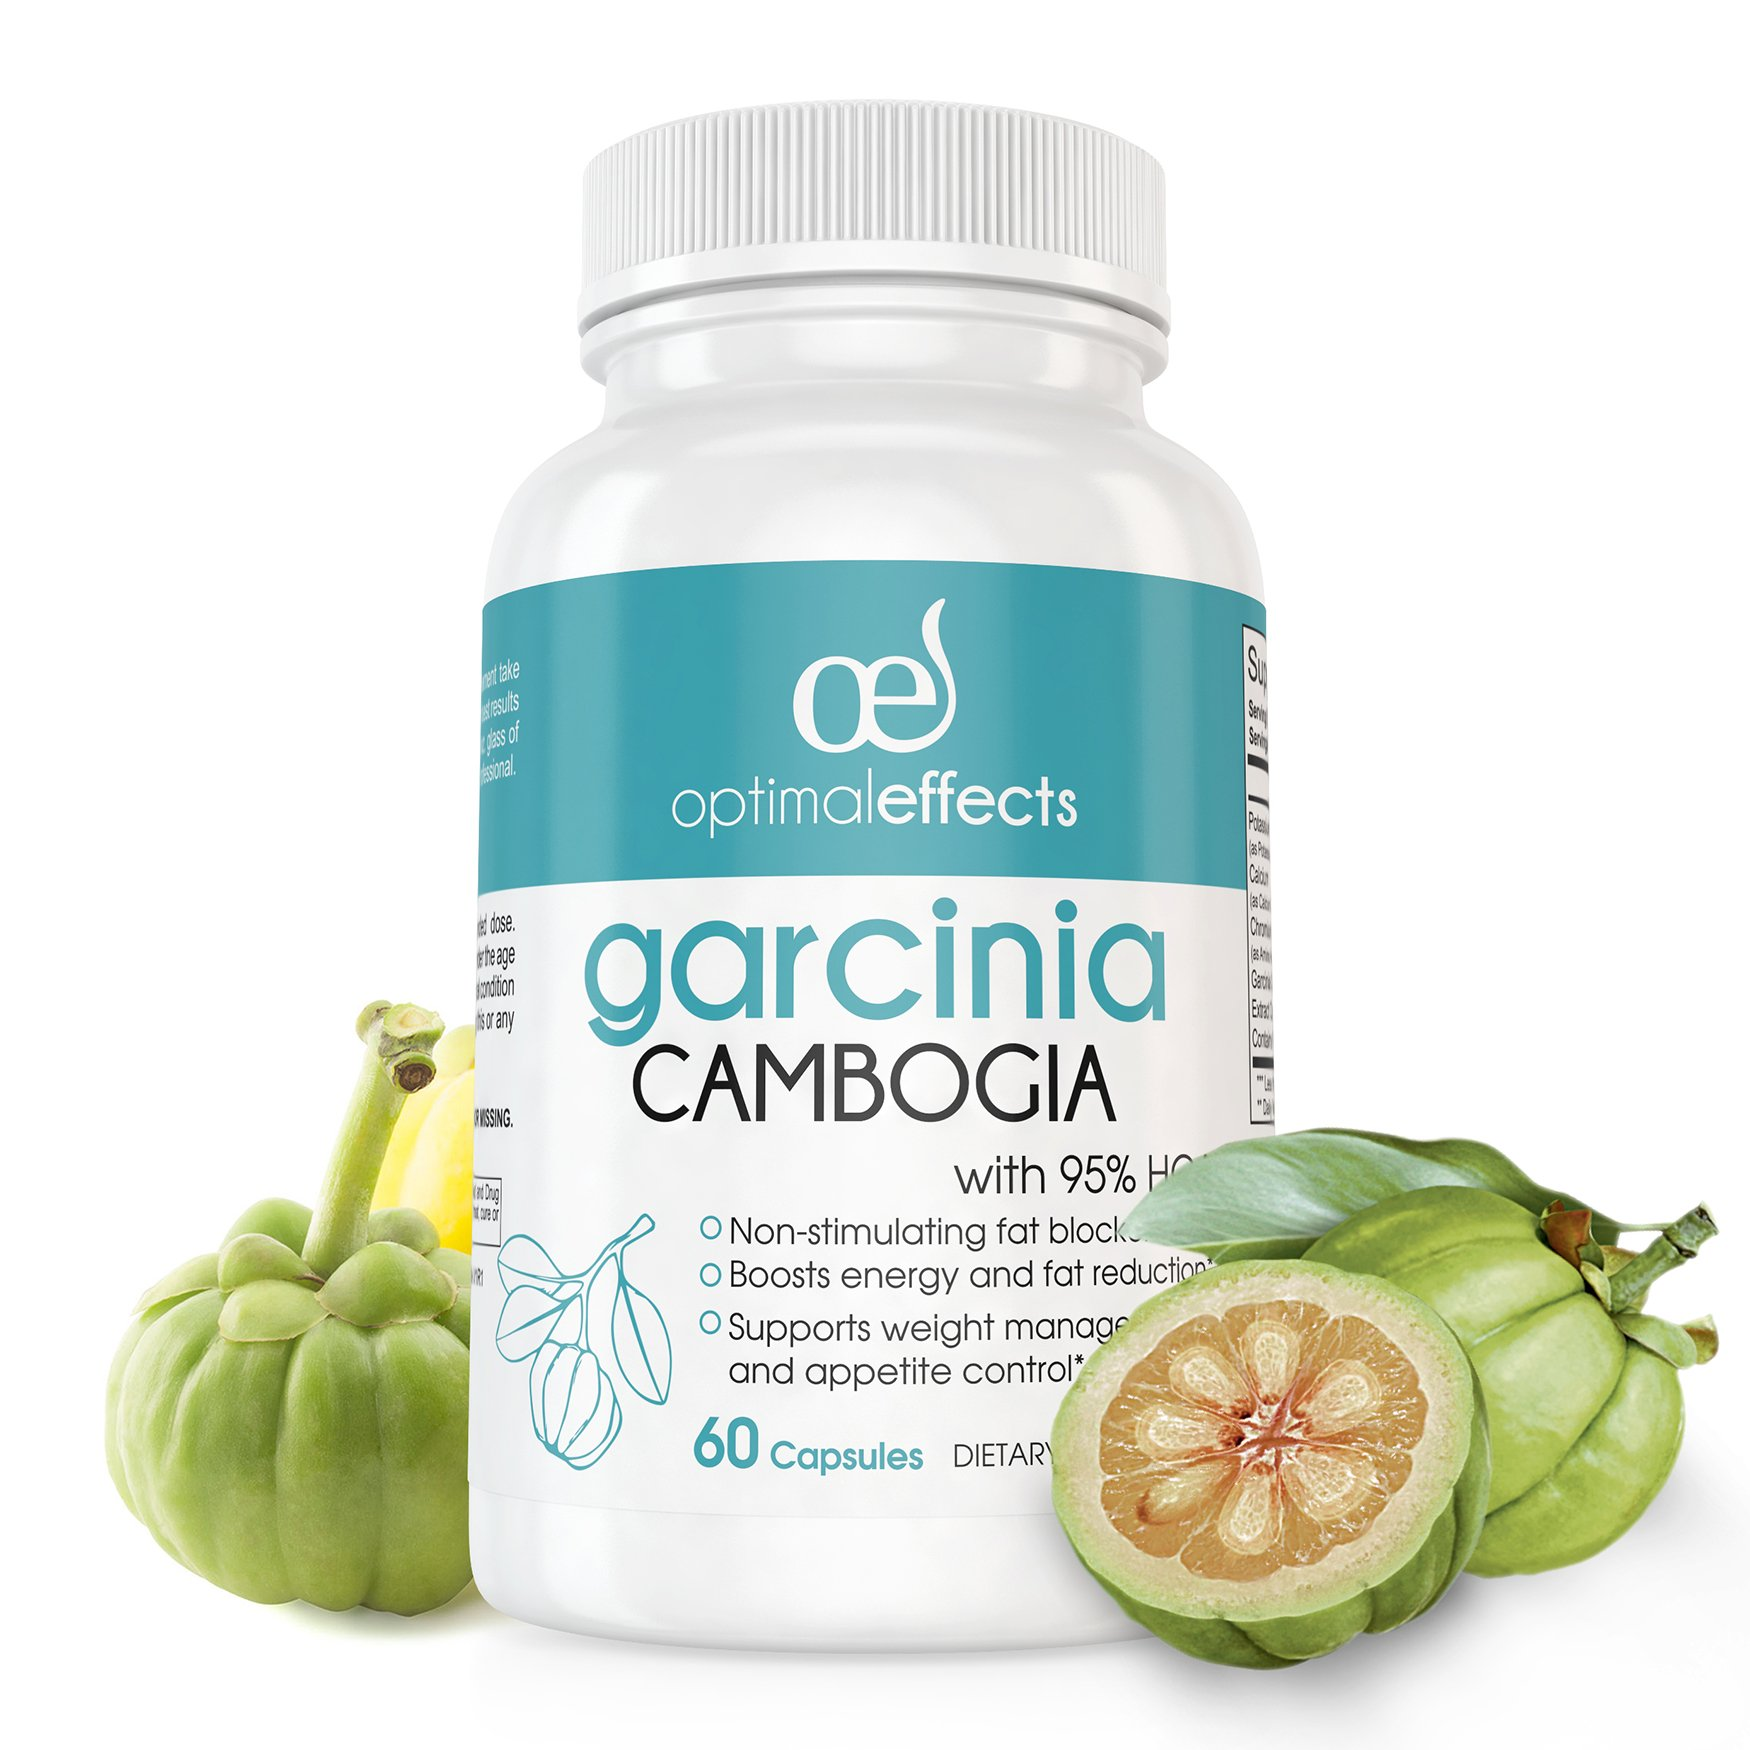 95% HCA Pure Garcinia Cambogia Extract by Optimal Effects - Extreme Carb Blocker with Fast Acting Appetite Suppression & Fat Burner Supplement - 60 Veggie Capsules (1)